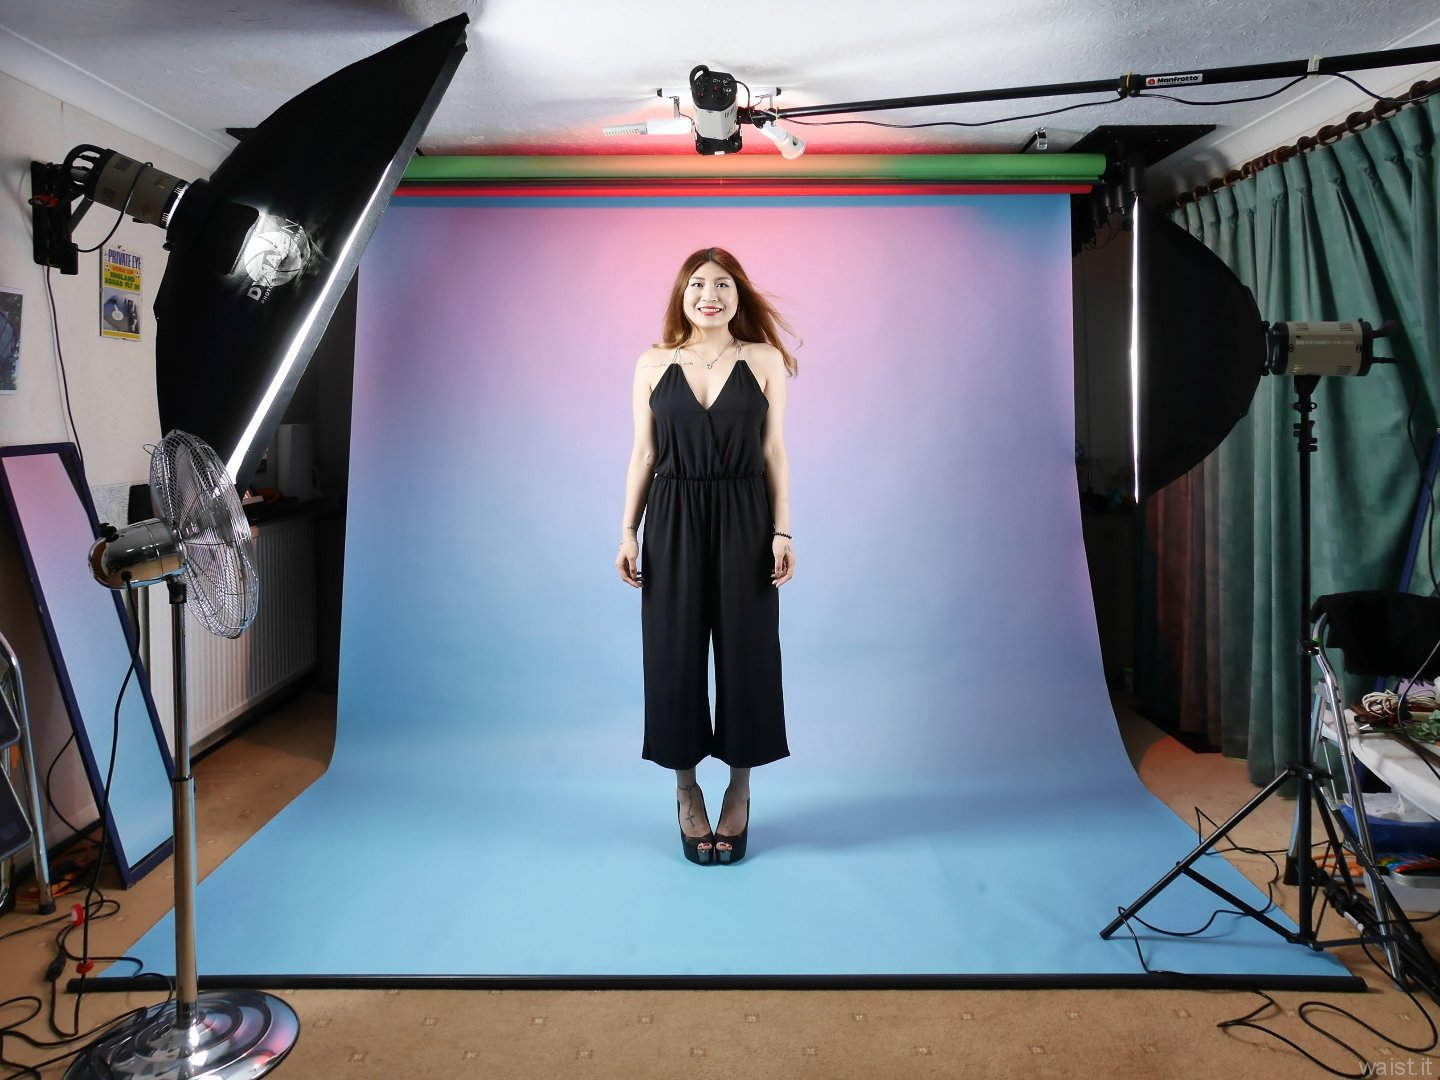 2015-08-03 Laura Toy as she arrived, studio long-shot